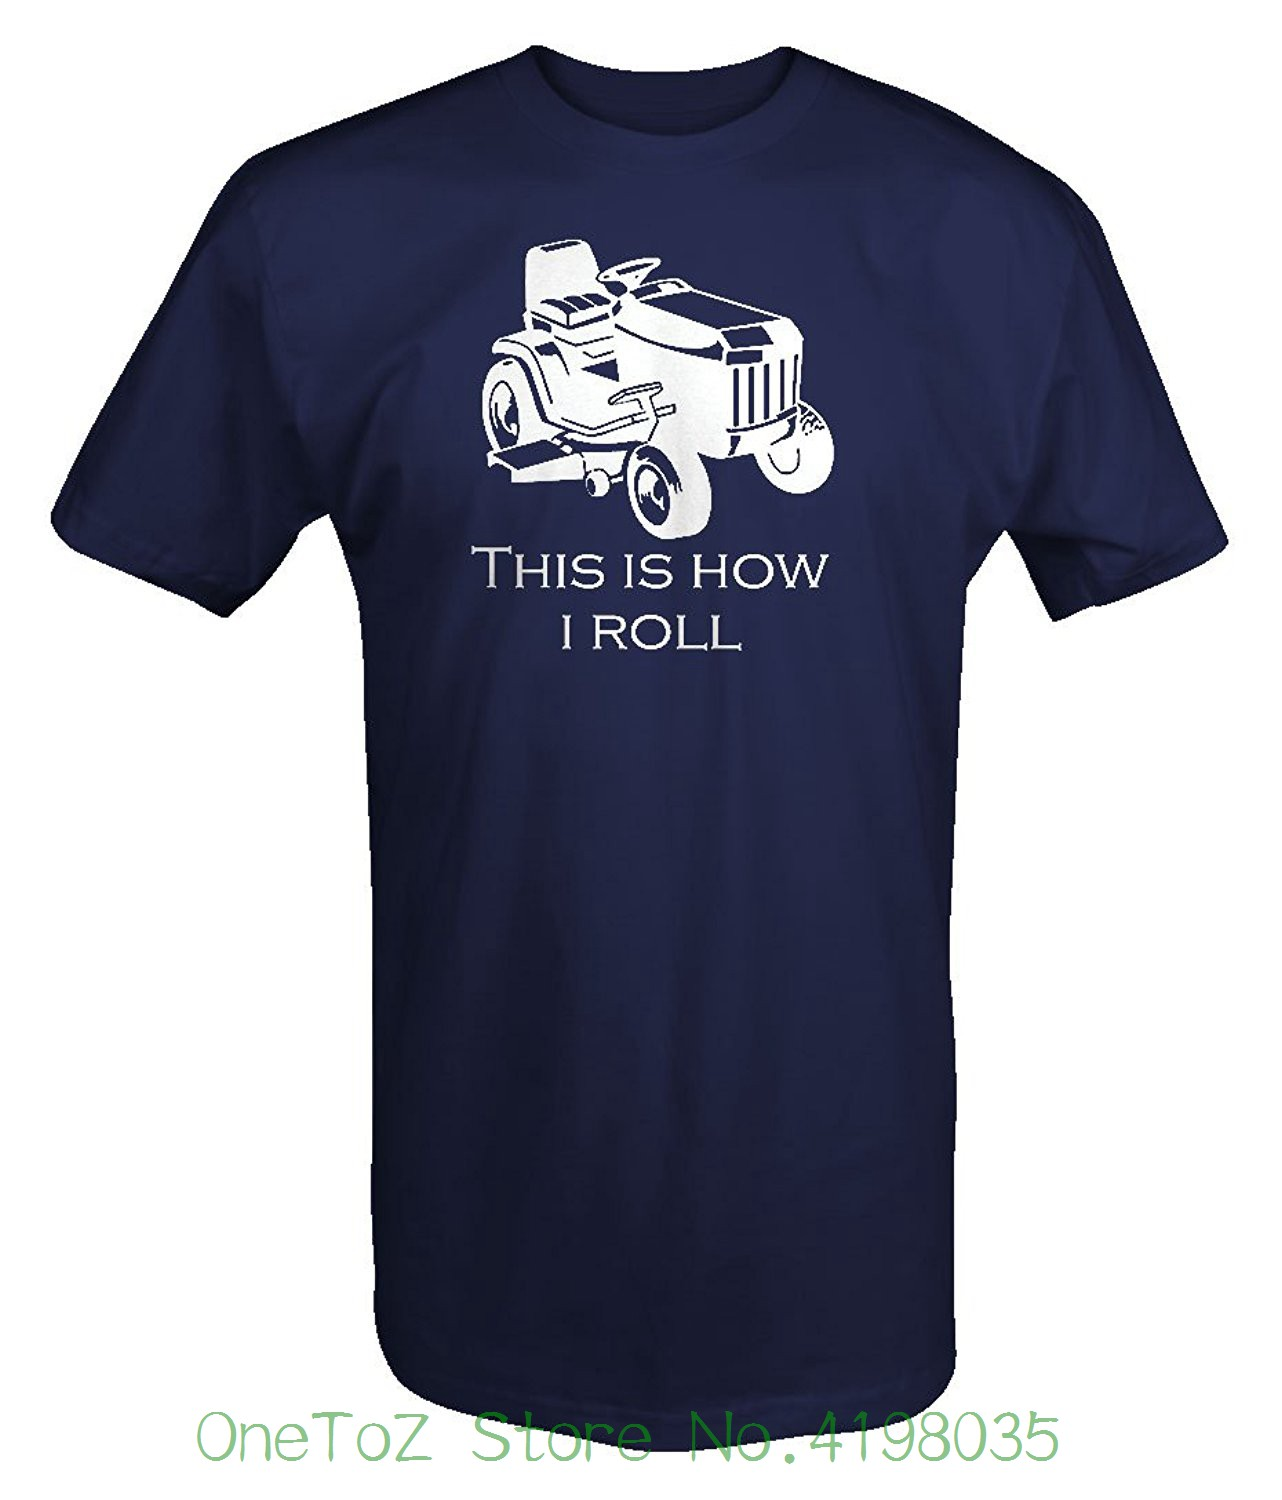 This Is How I Roll Riding Lawn Mower Grass Cutting Landscaping T Shirt Funny Short Sleeve Cotton T-shirts